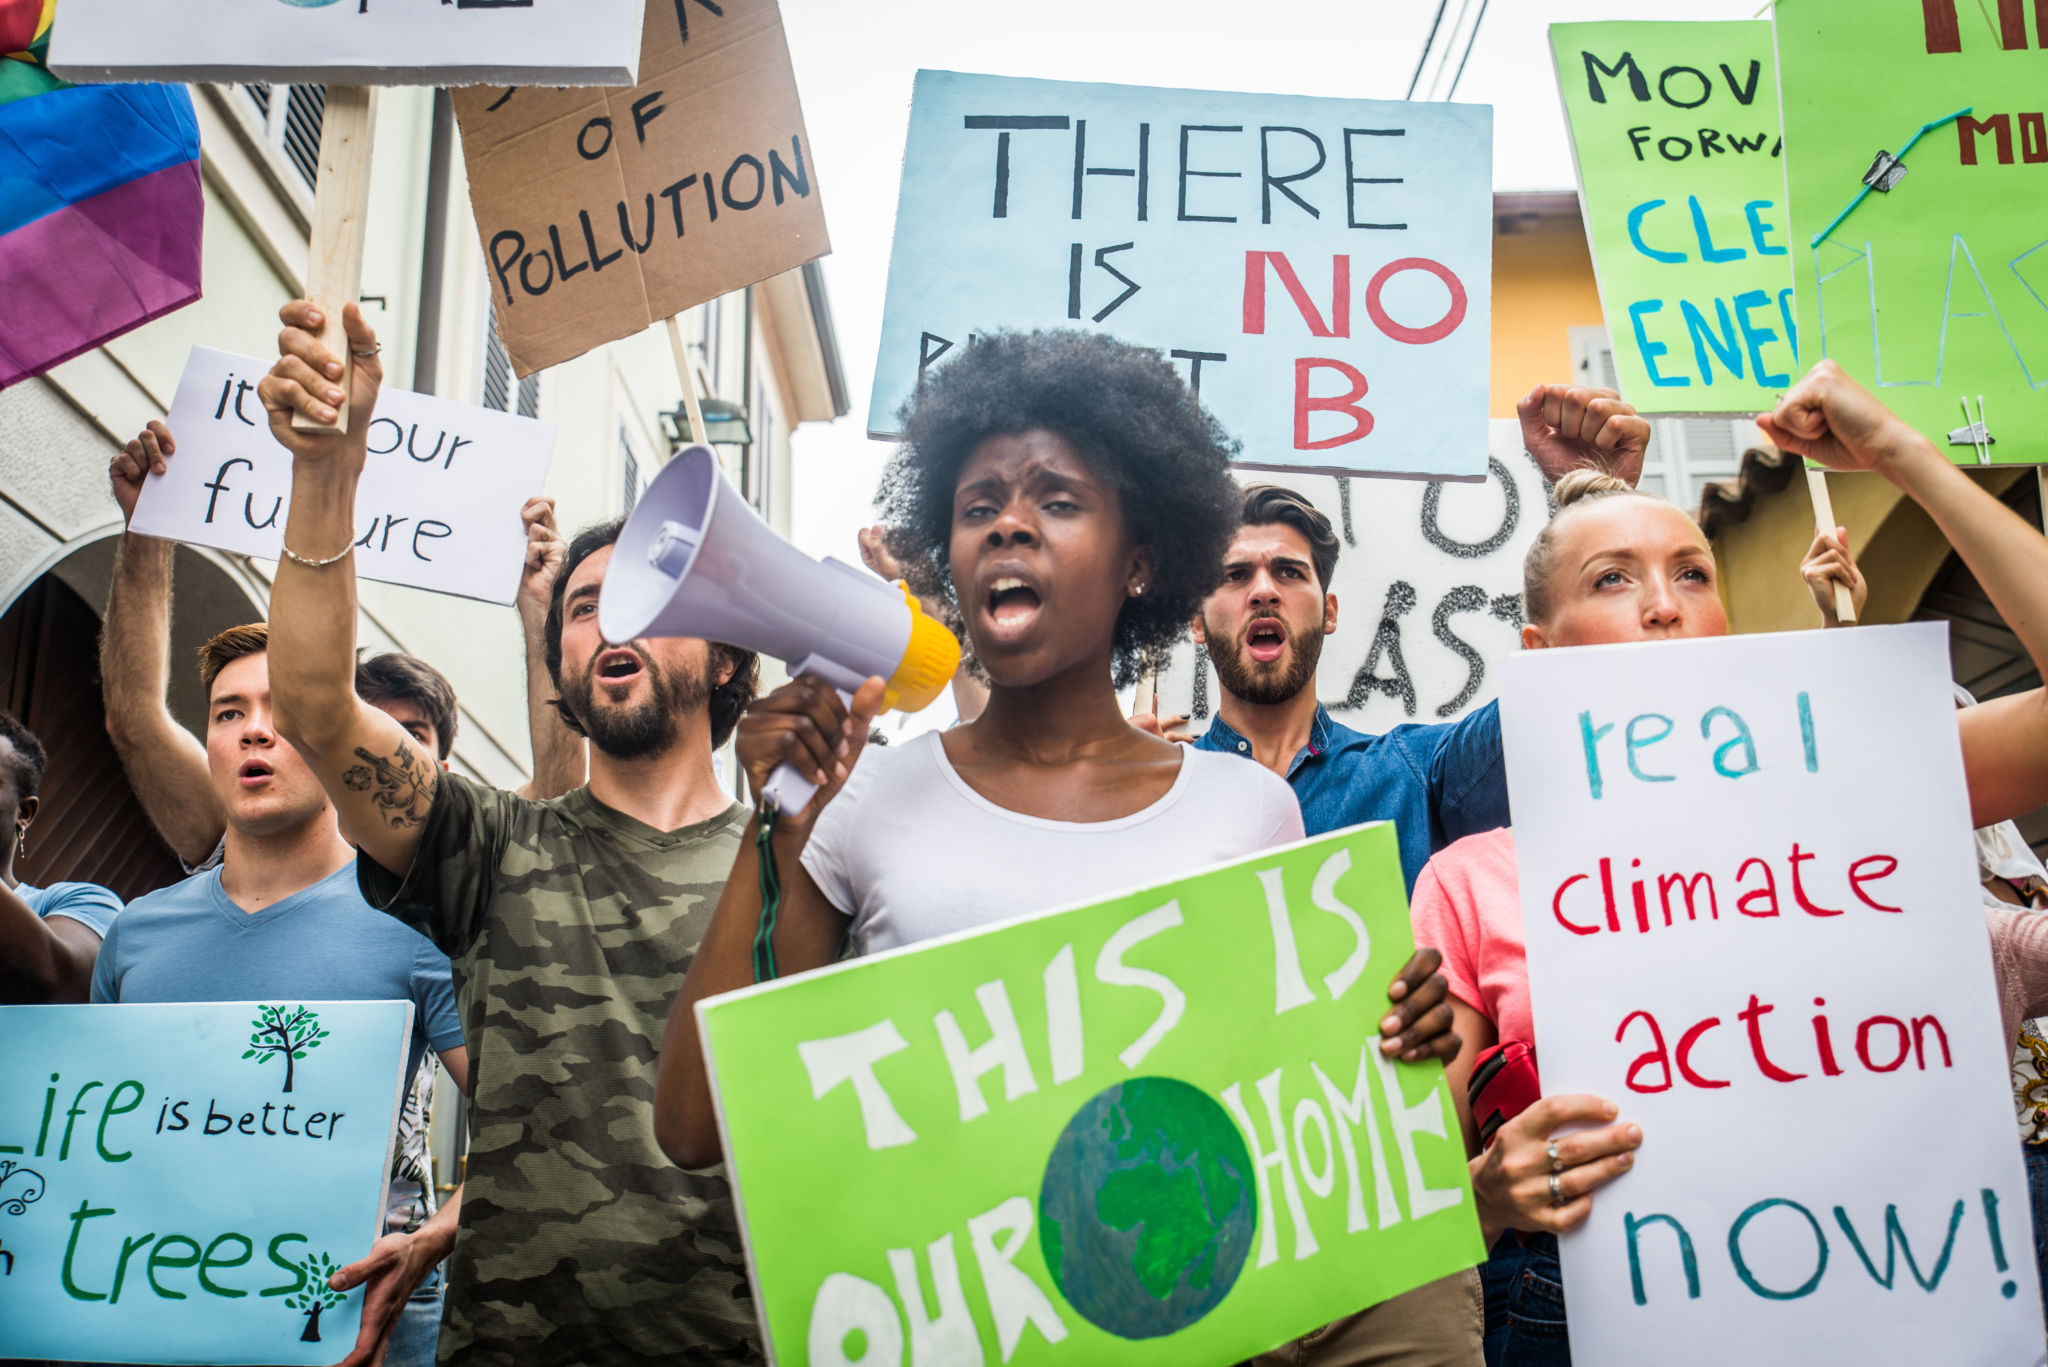 Wednesday Nite @The Lab: Environmental Justice & Sustainable Development